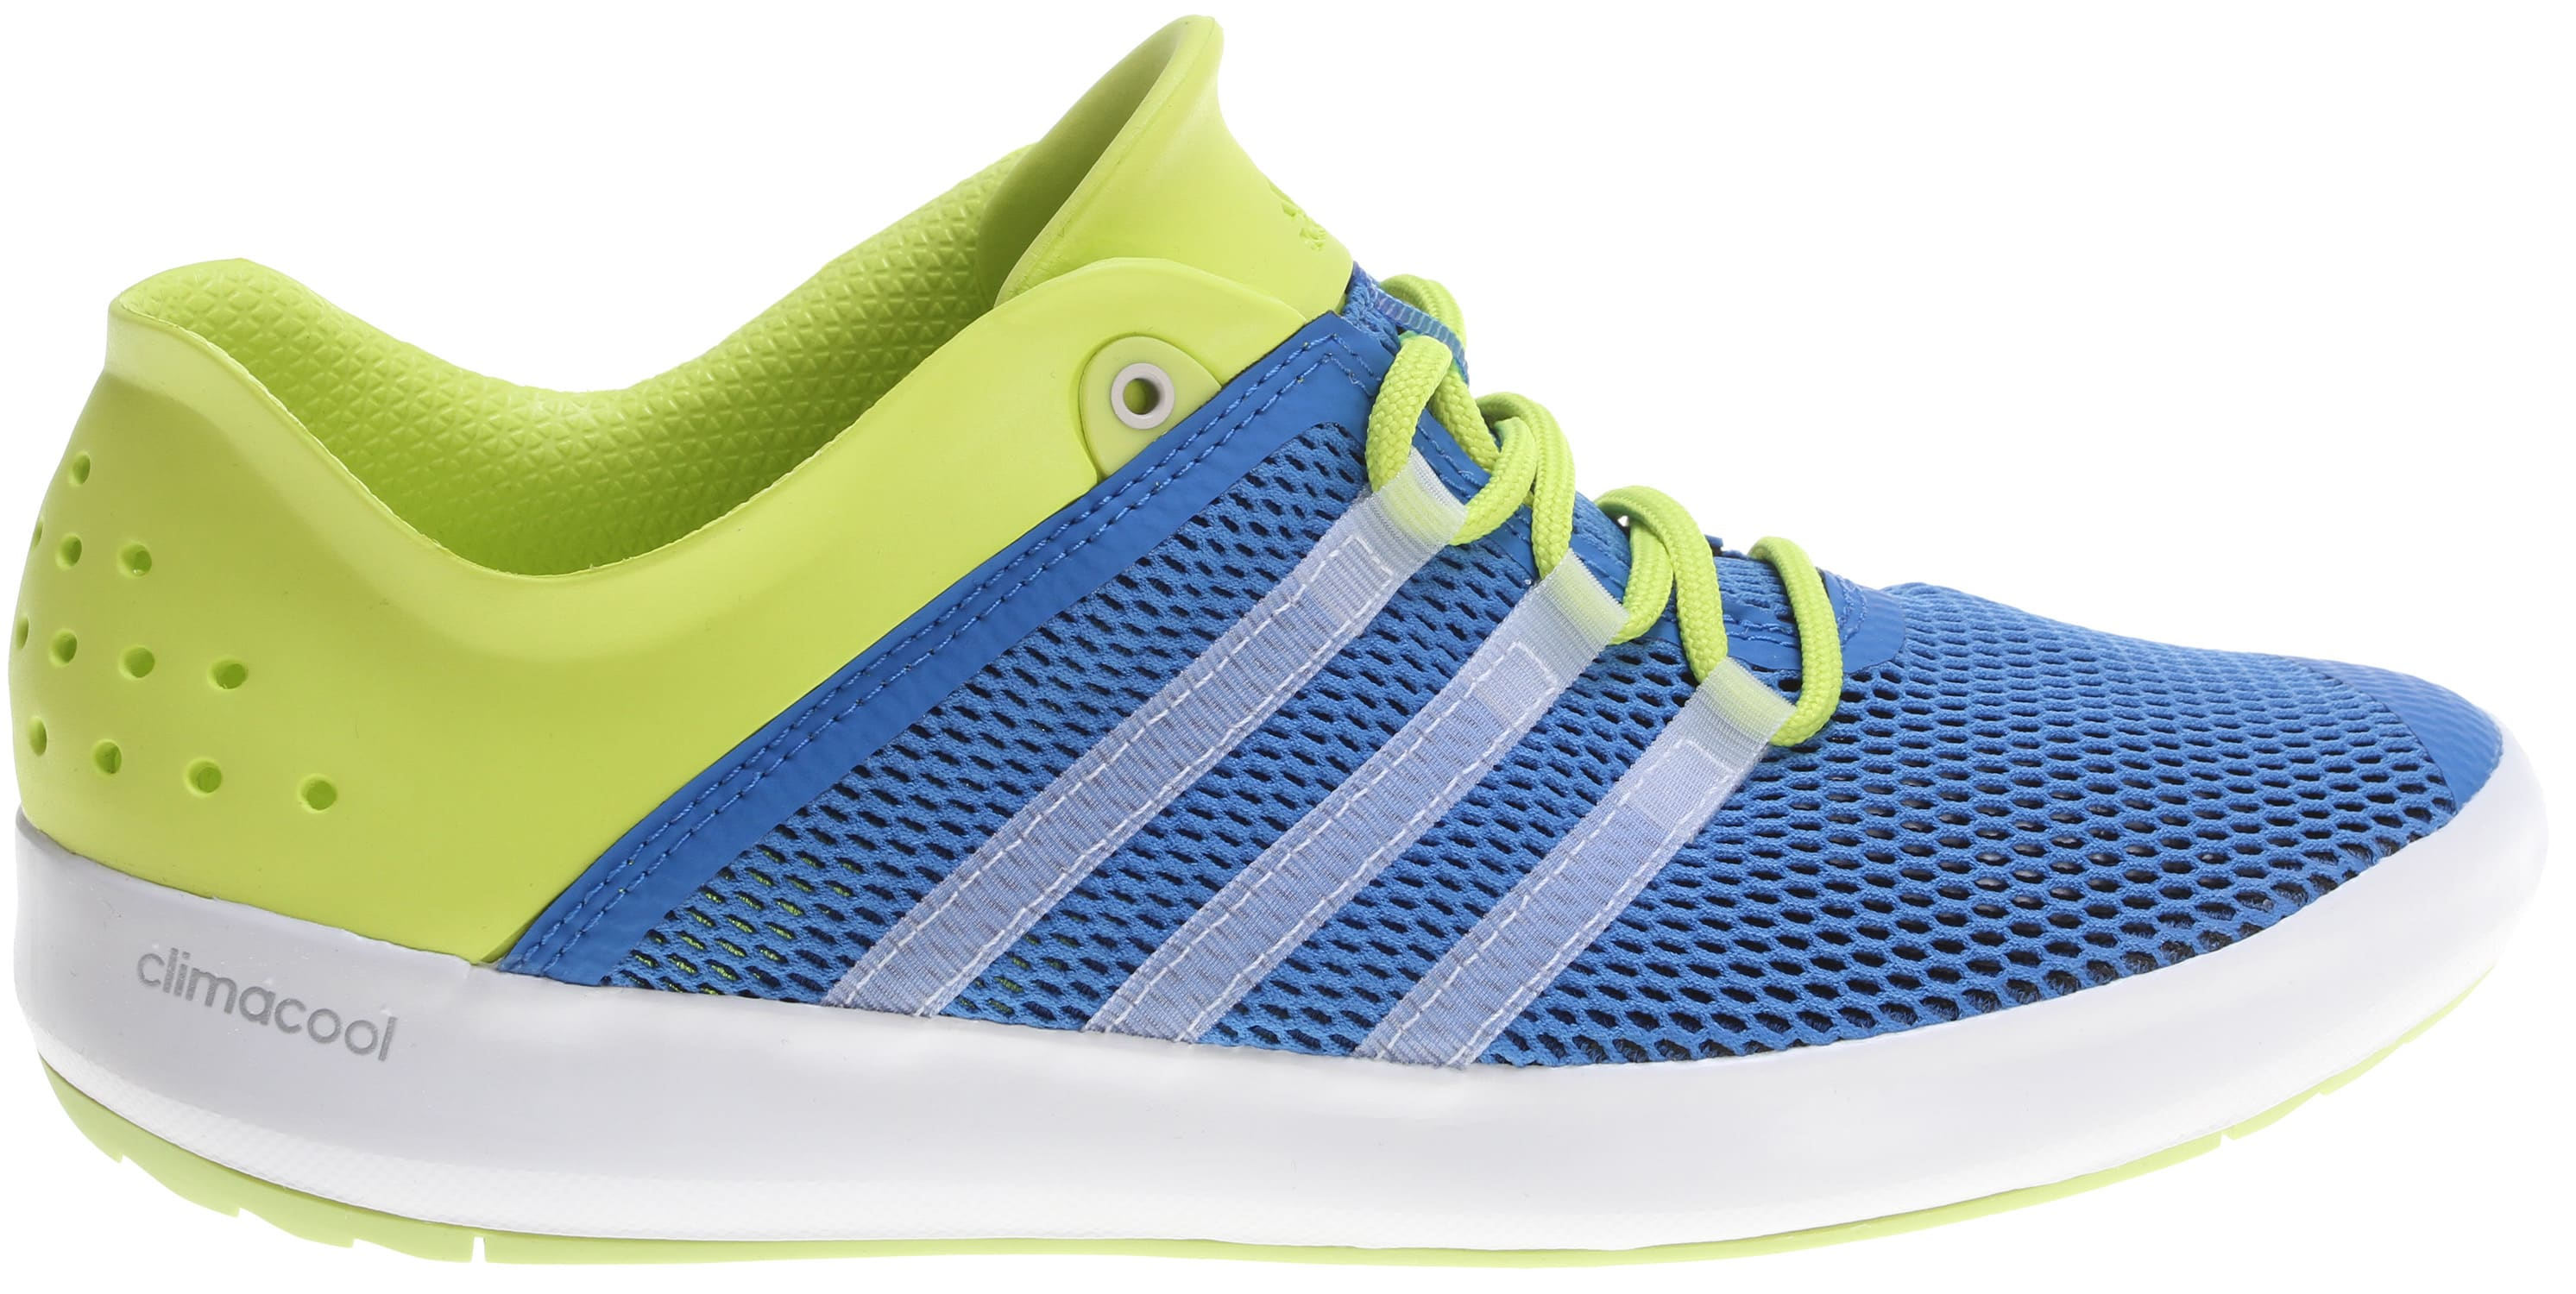 adidas men's boat climacool water shoes